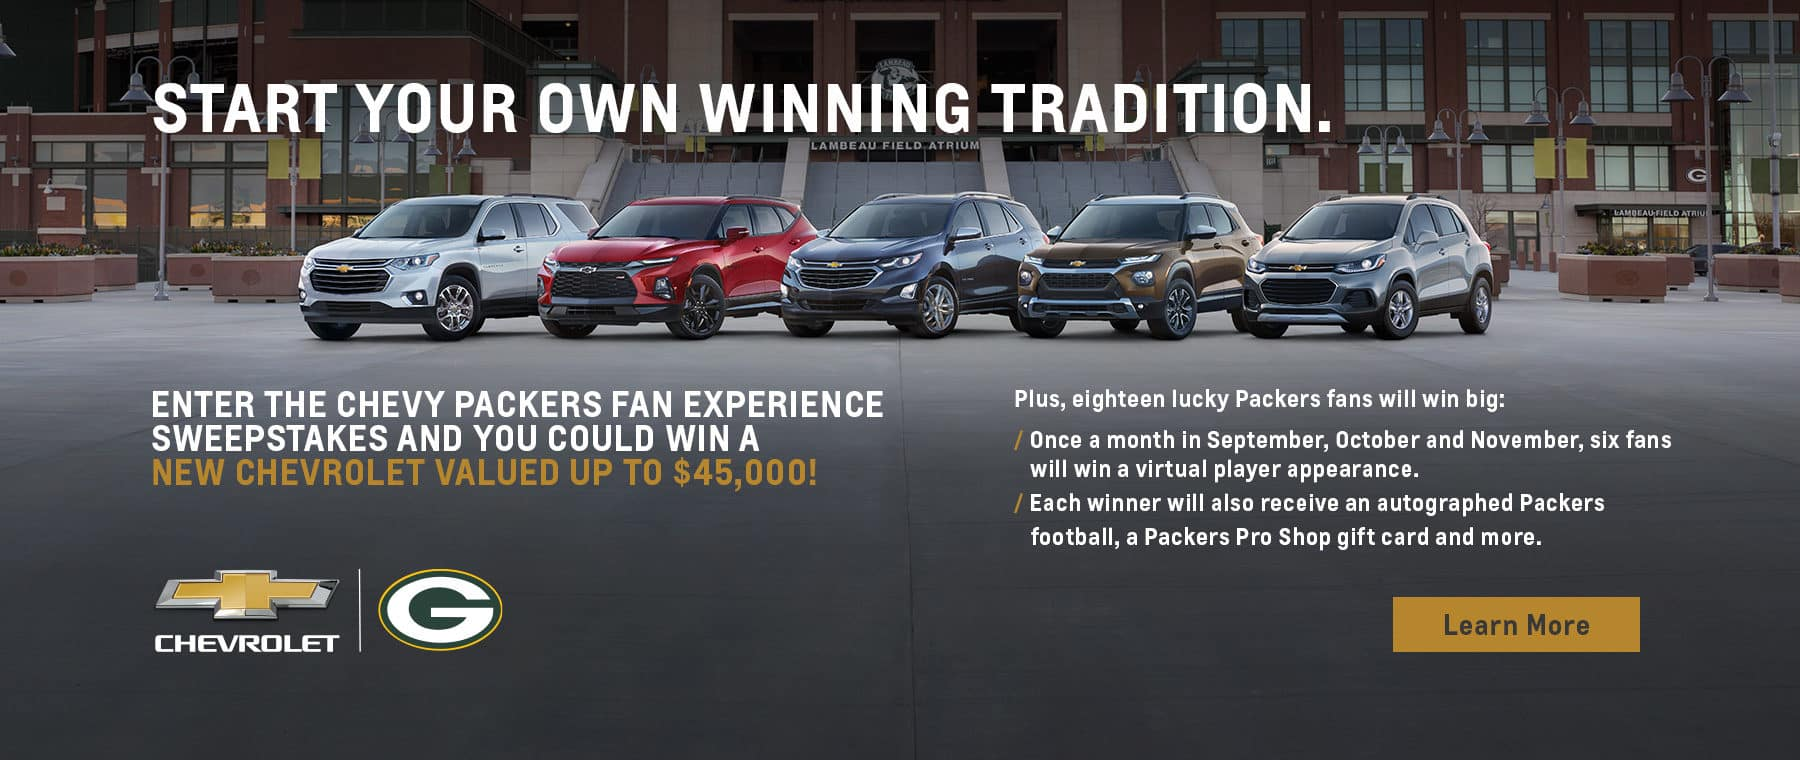 Start your own winning tradition